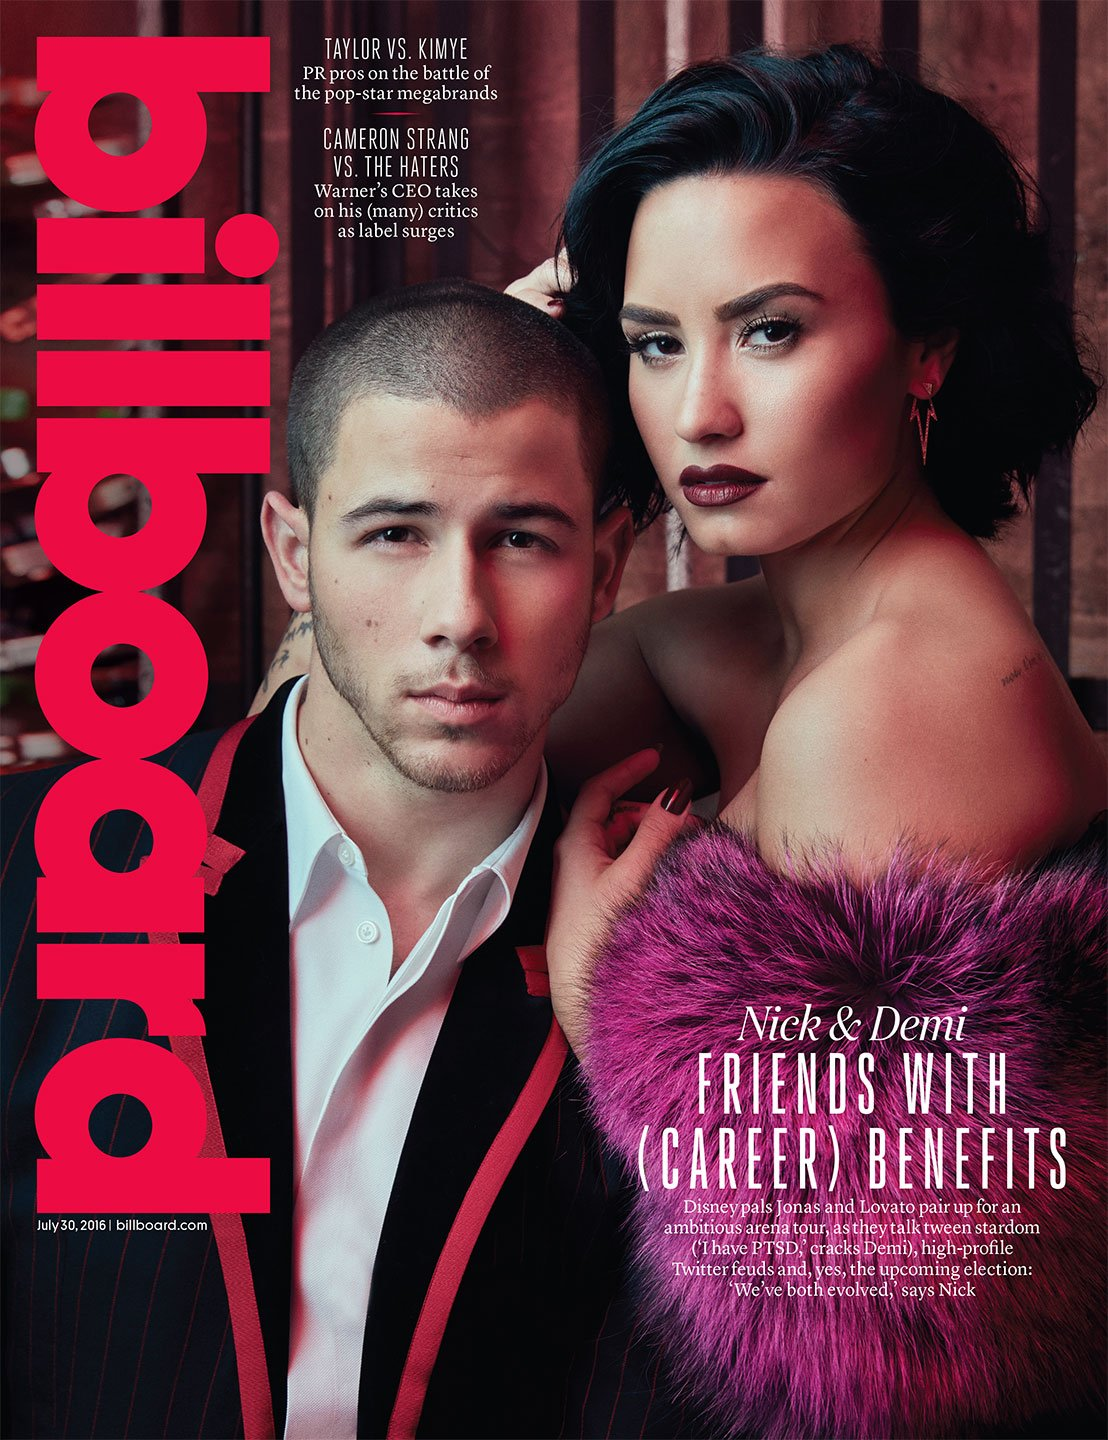 Cover Story: A real conversation between @ddlovato & @NickJonas https://t.co/mYCFXKBUBe https://t.co/sxeM6ht8BP